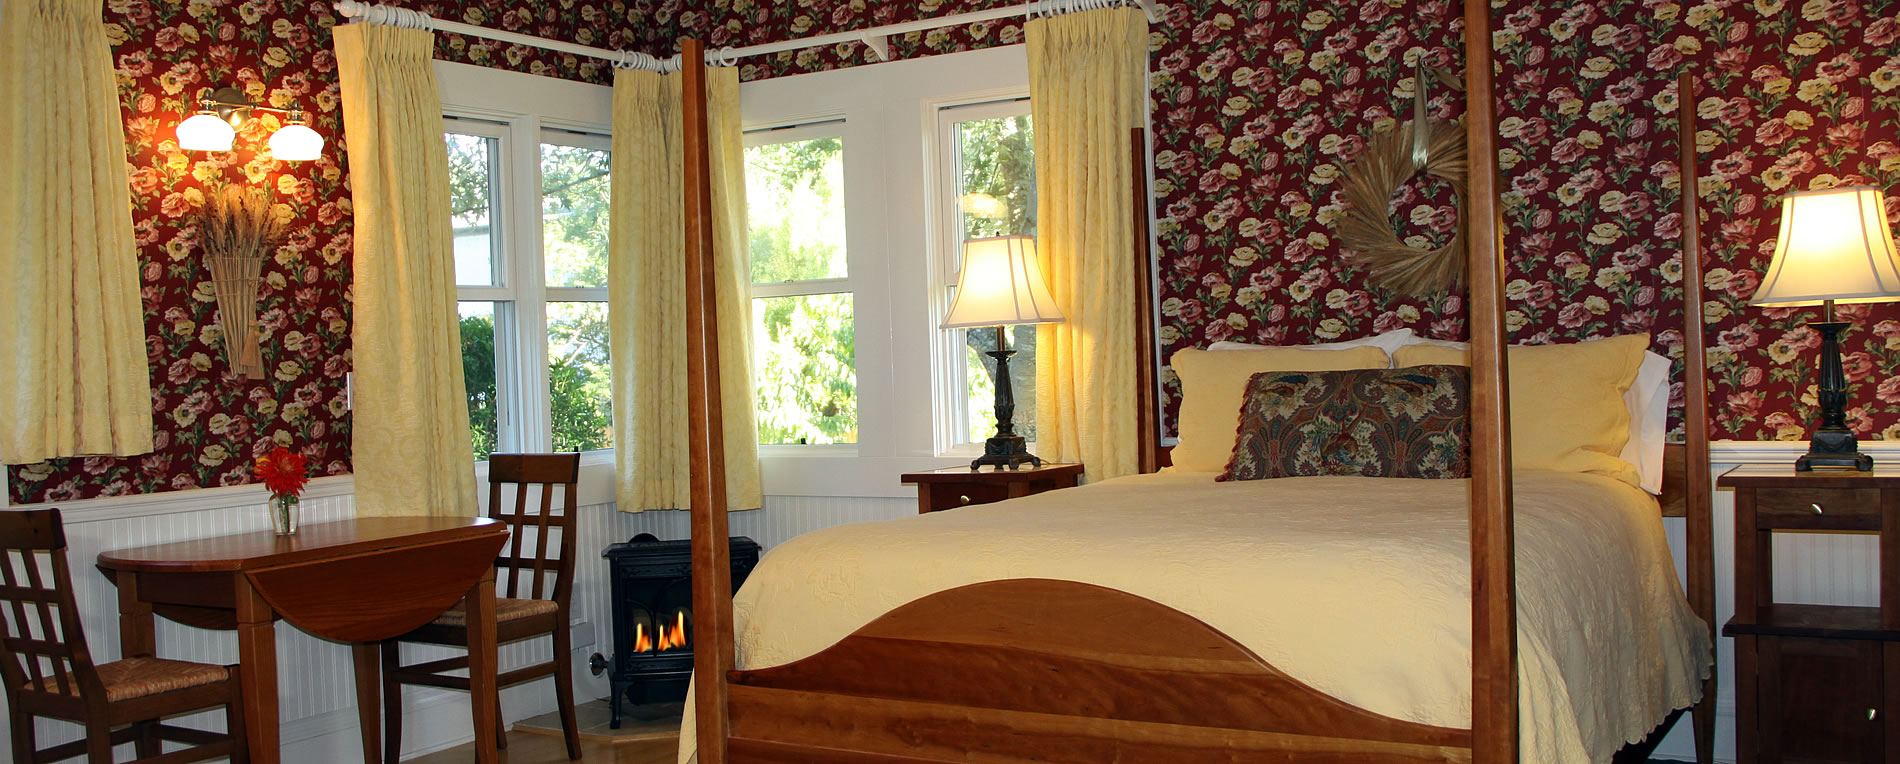 russian river inns special offers